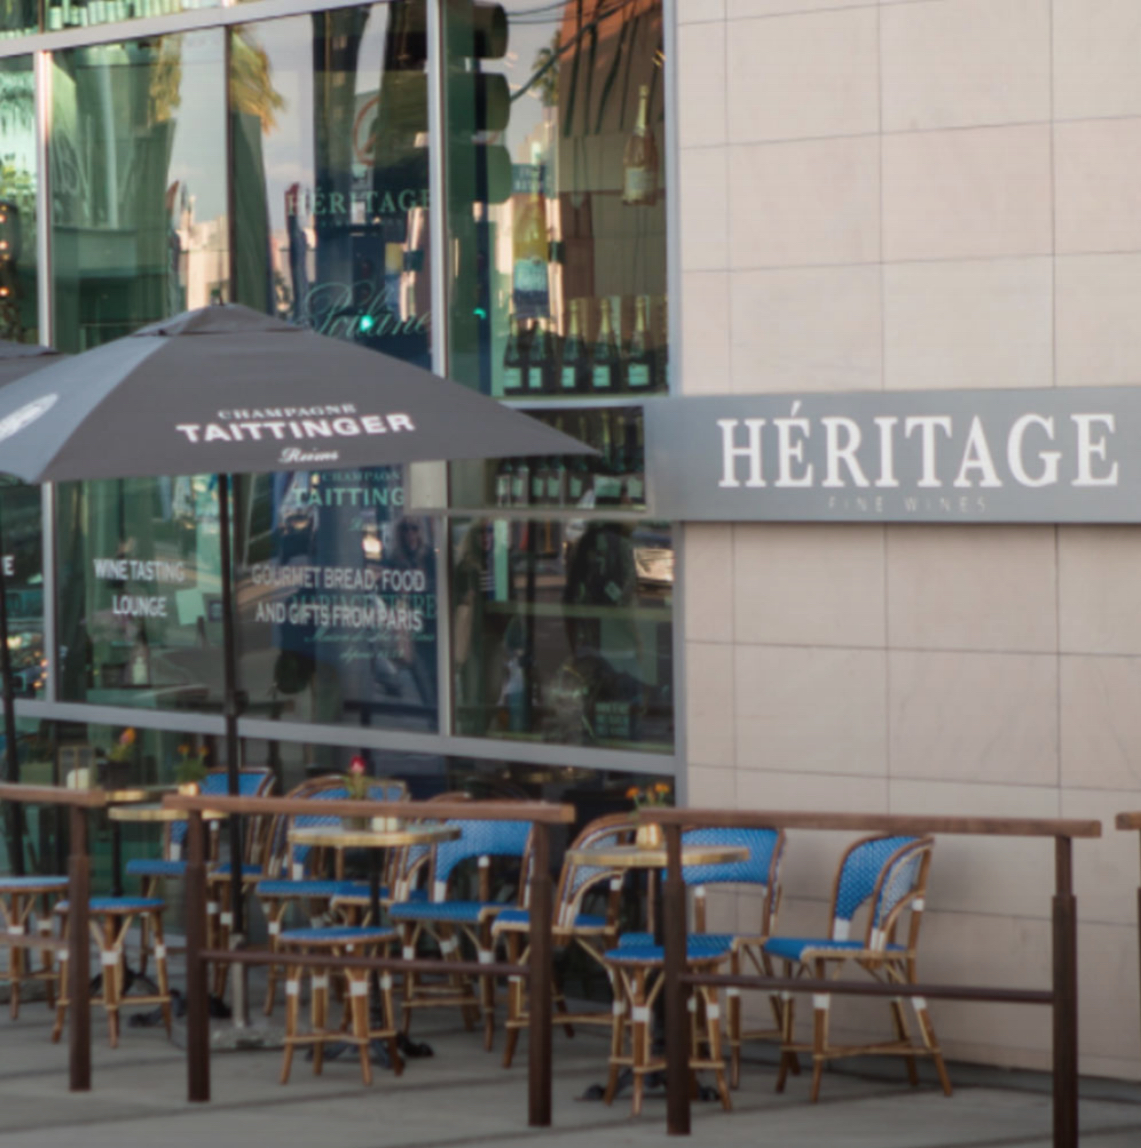 An outdoor seating area at Héritage Fine Wines in Beverly Hills, CA.